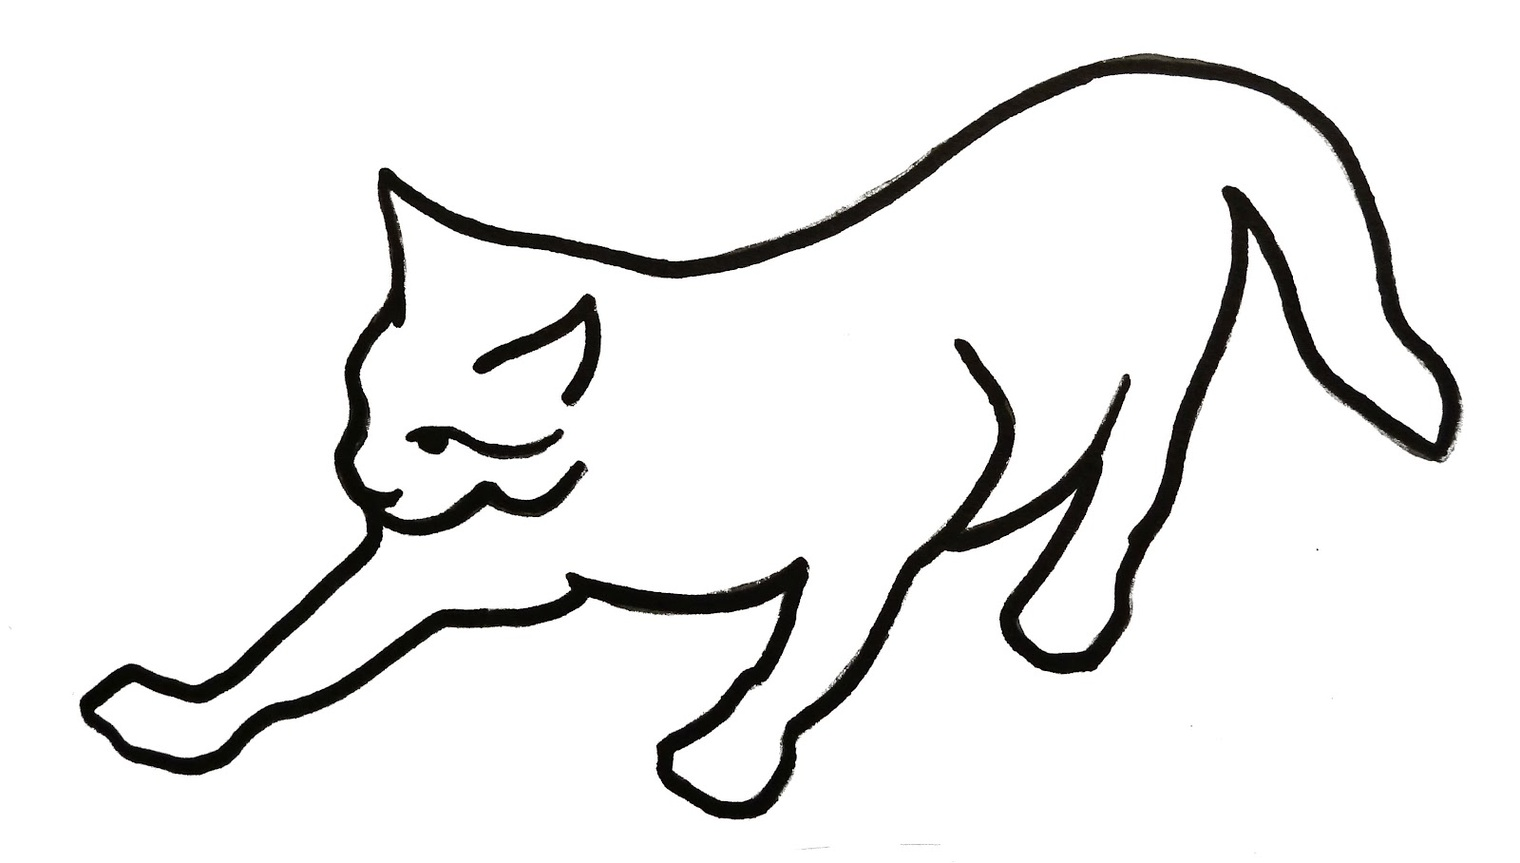 Line Art Design Illustration : Line drawing of cats clipart best